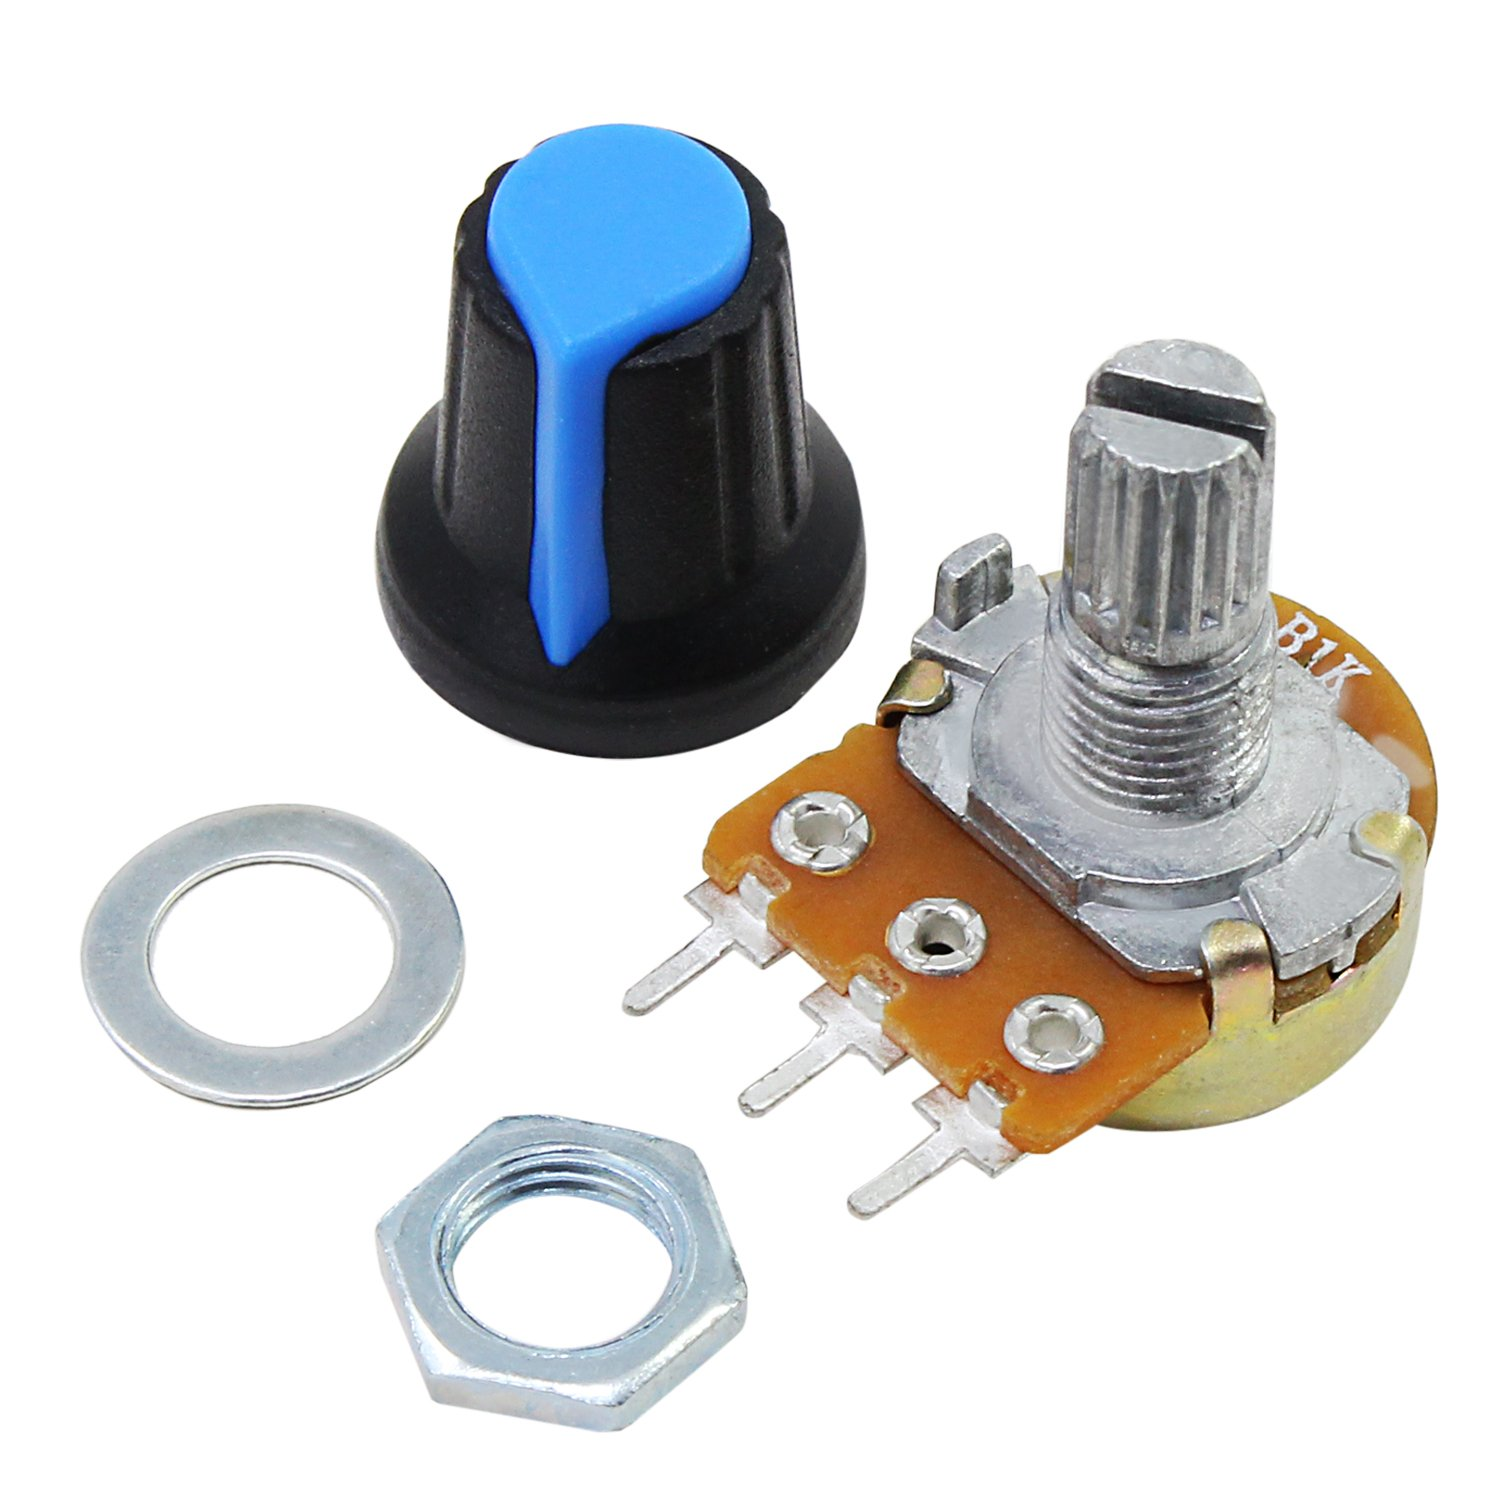 AIKE 1K 2K 5K 10K 20K 50K 100K 500K 1M Linear Potentiometer w/Knob Assortment by AIKE (Image #4)